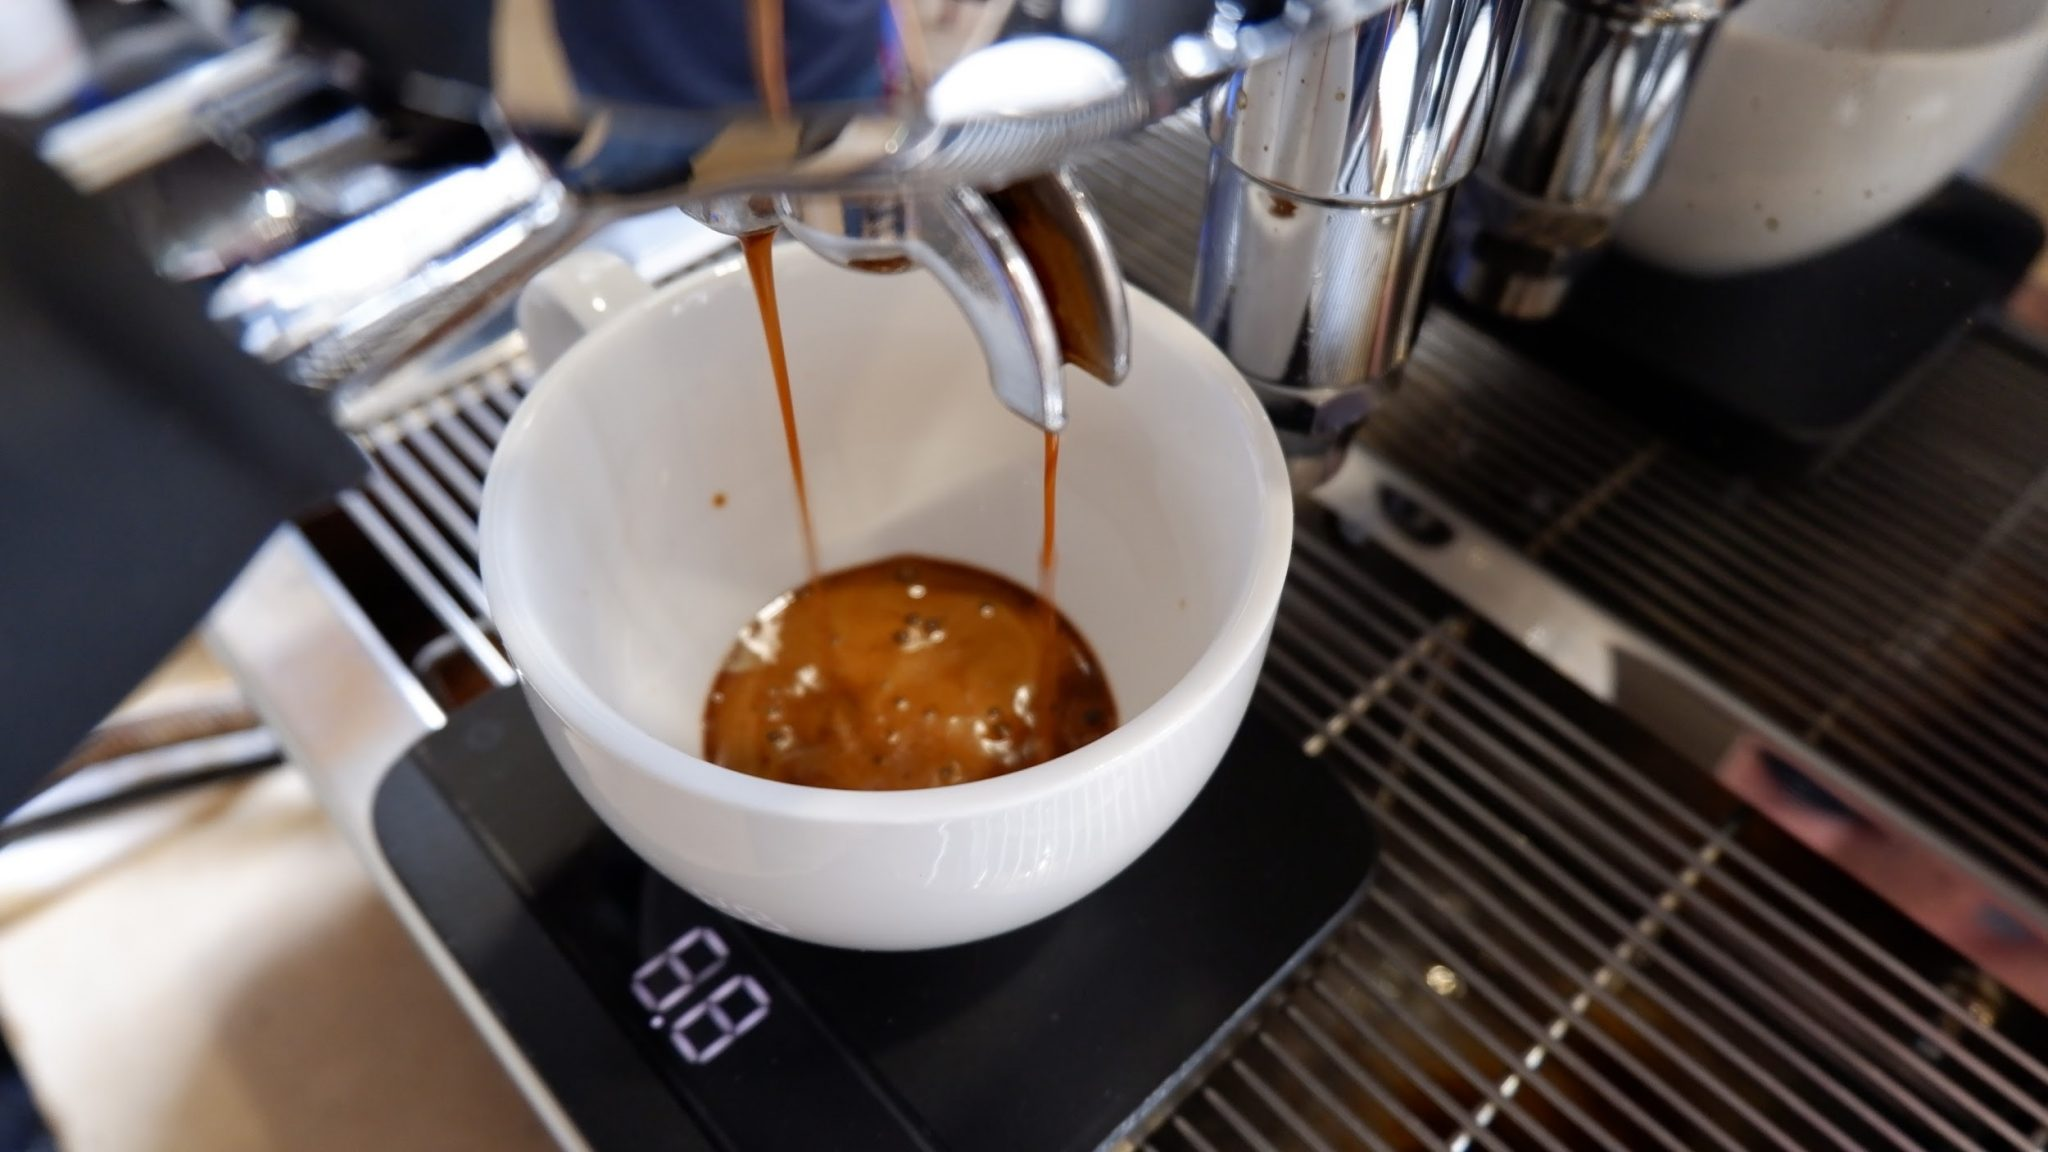 an espresso machine in action in a coffee shop